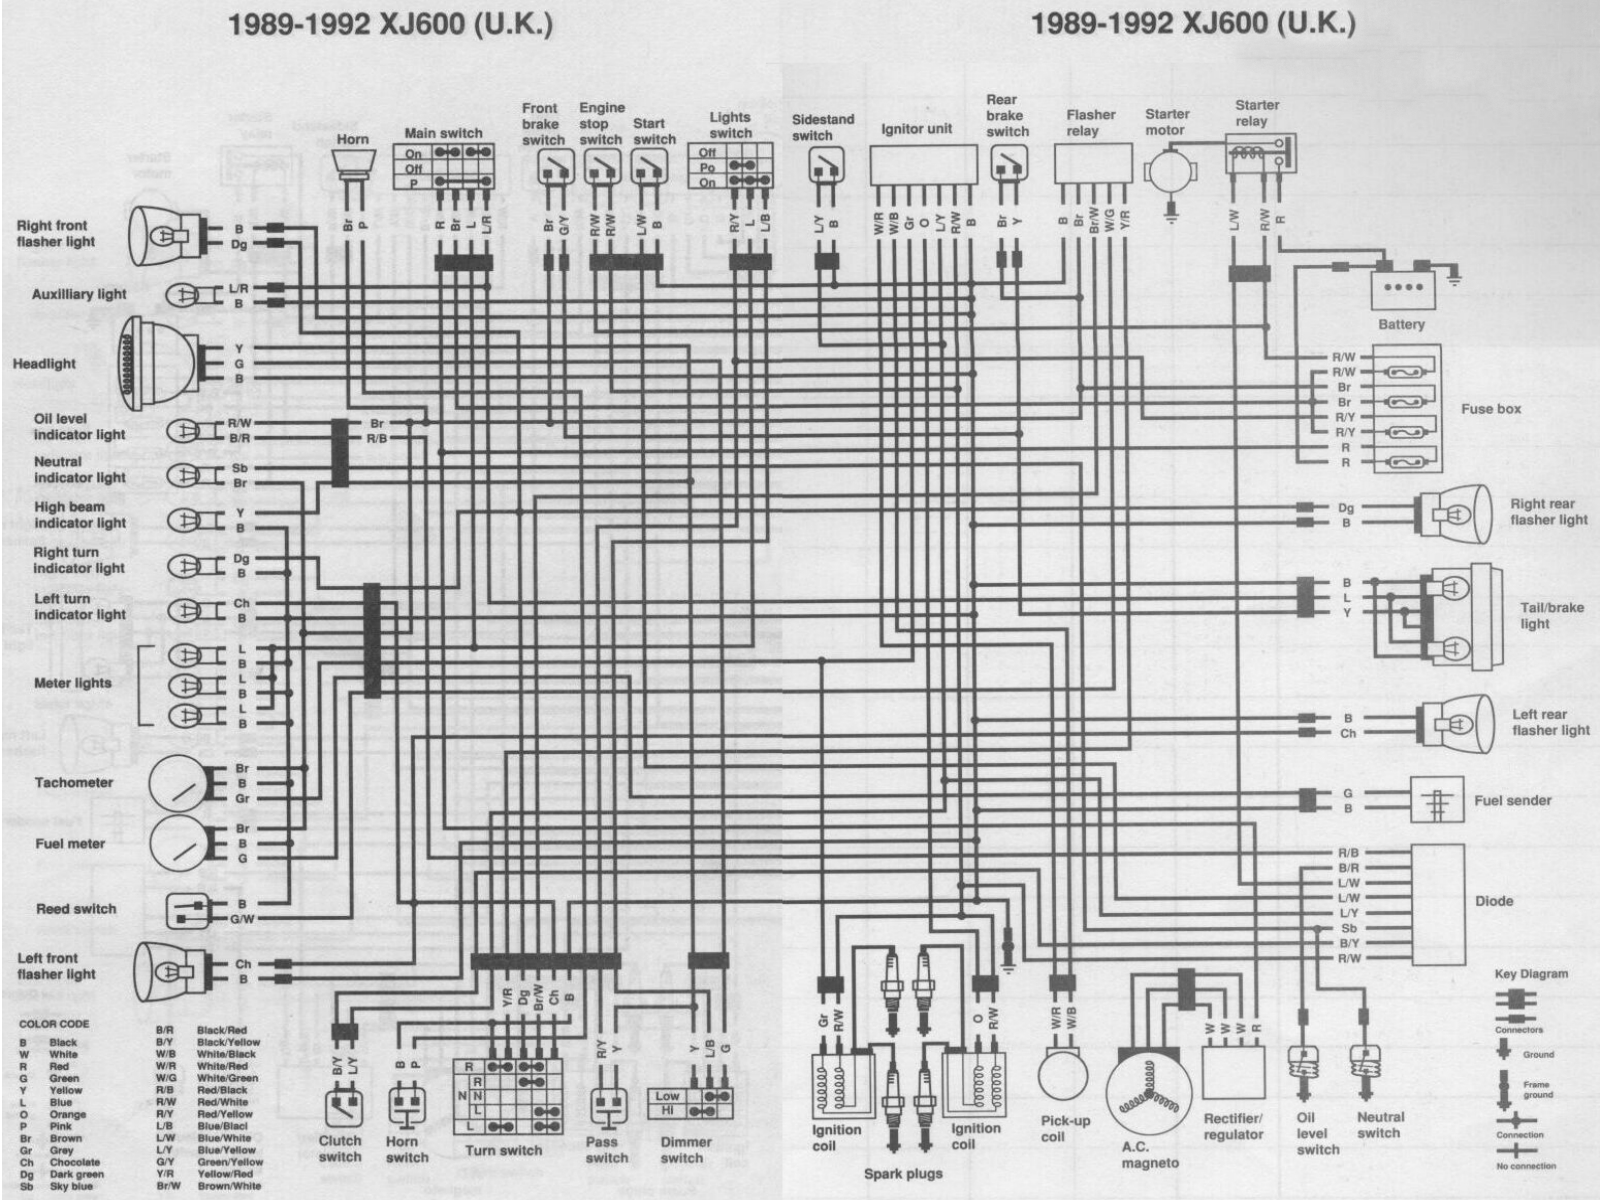 1977 Yamaha Xs 750 Wiring Diagram Diagram Base Website Wiring Diagram -  3WAYSWITCHWIRINGDIAGRAM.EKLIPSEDESIGN.ITDiagram Base Website Full Edition - eklipsedesign.it